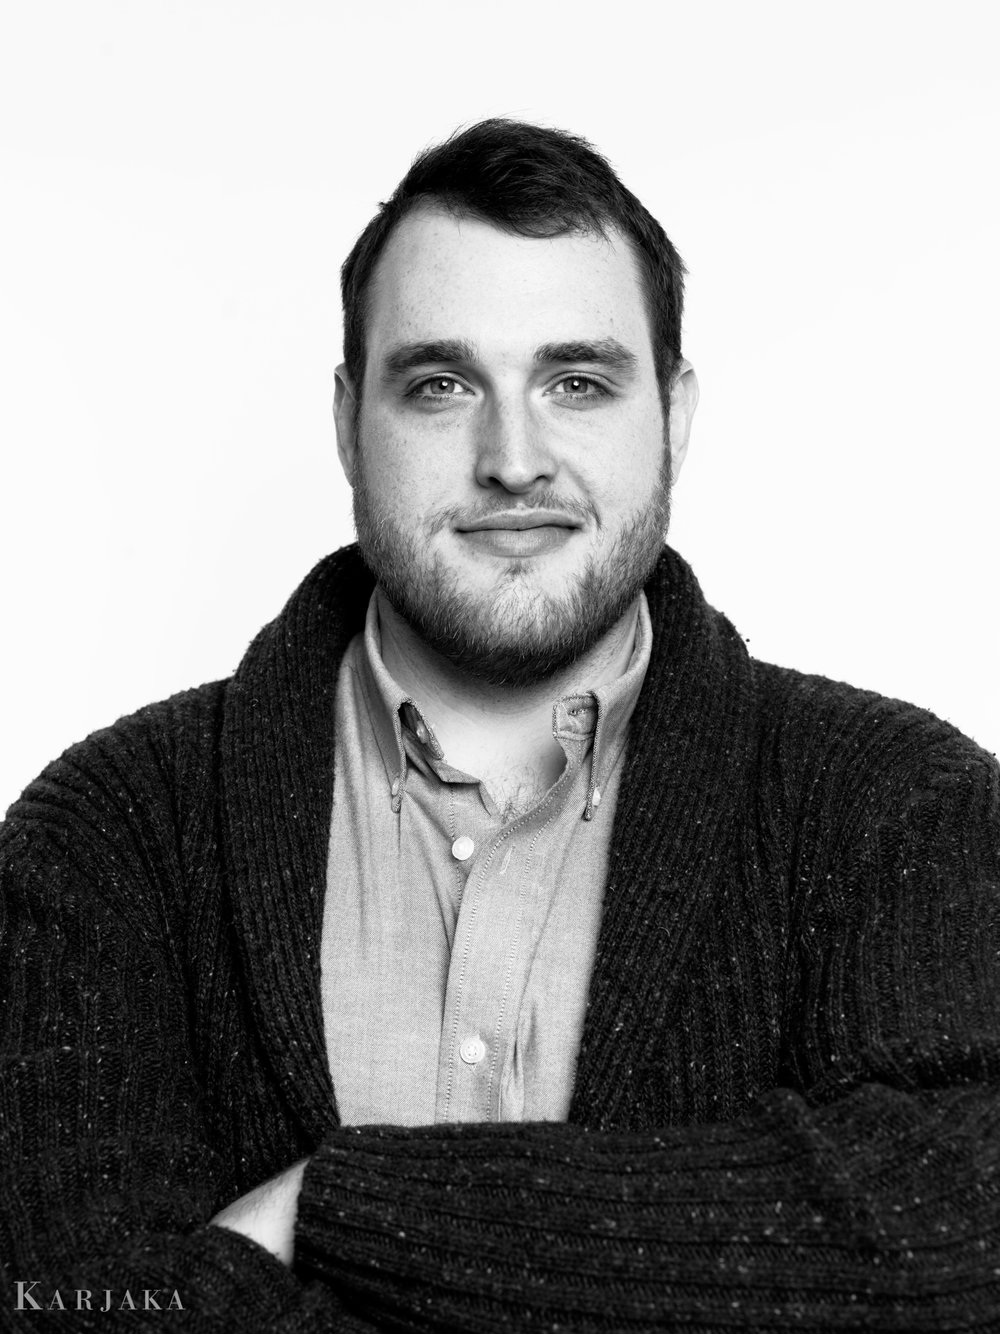 Jordan Stinewriter, designer - Jordan is a Brooklyn-based designer, creative thinker, and avid day dreamer. He is very excited to get the art and words rolling on Space Cadets Radio. His work can be found on the internet somewhere.